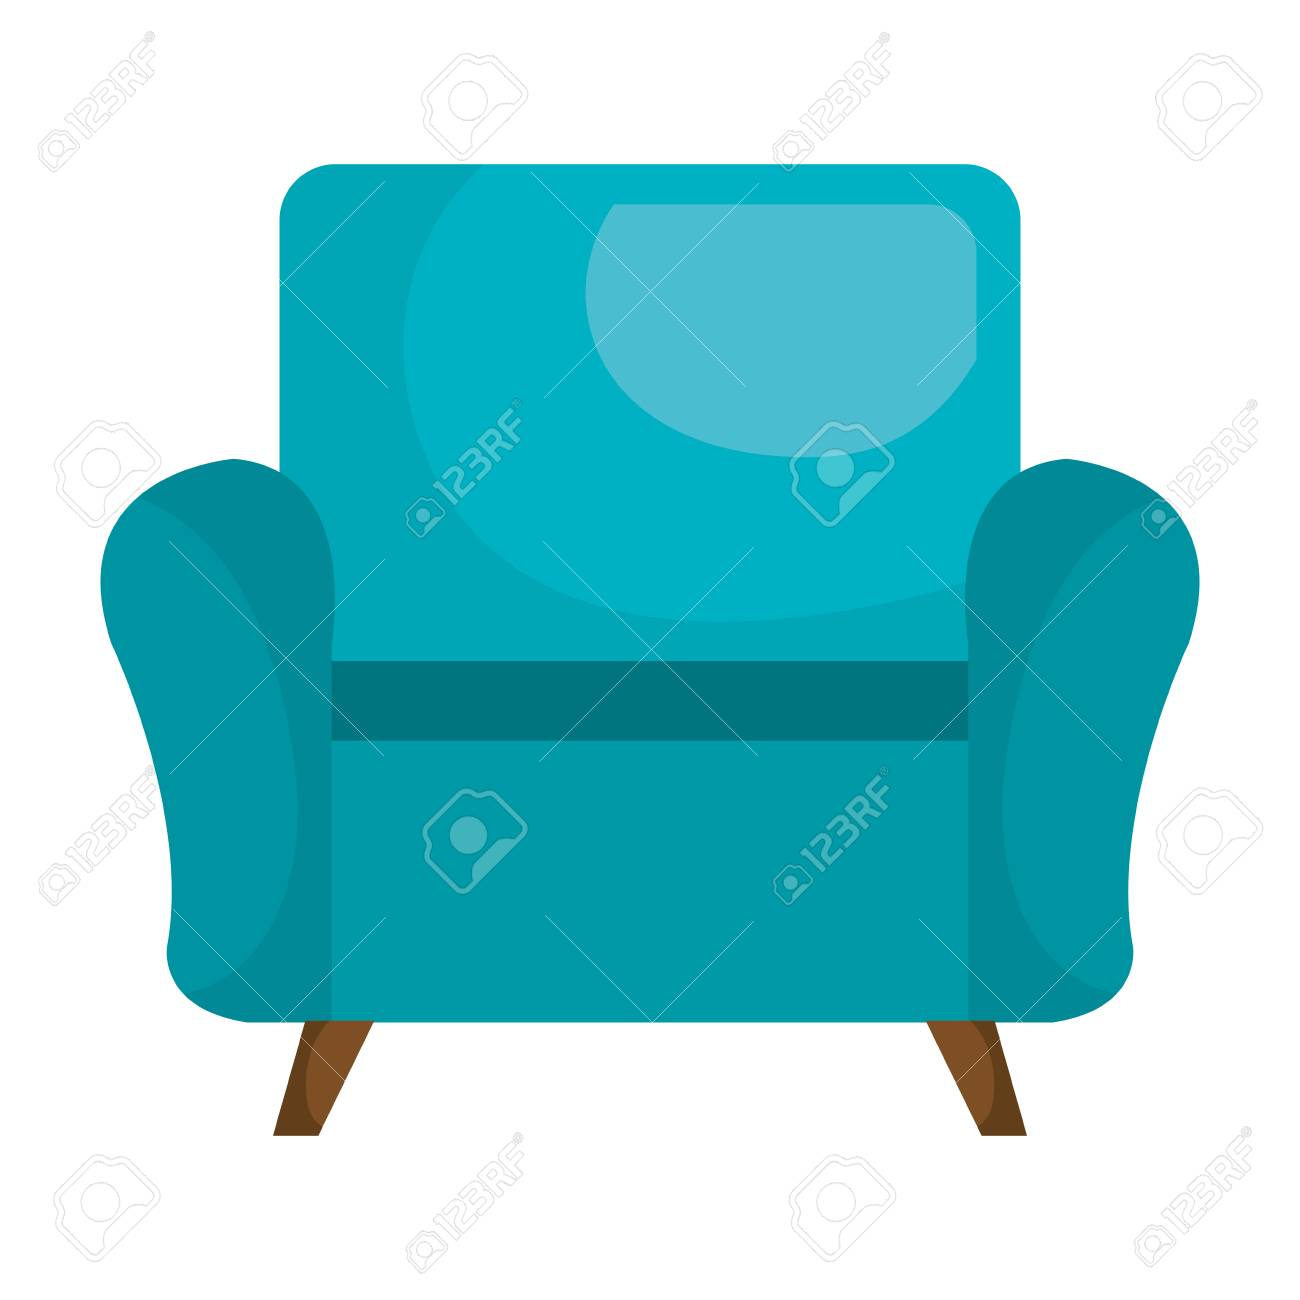 Blaue Sofa Stuhl Möbel Flach Symbol, Vektor Illustration, Grafik, Isoliert.  Standard